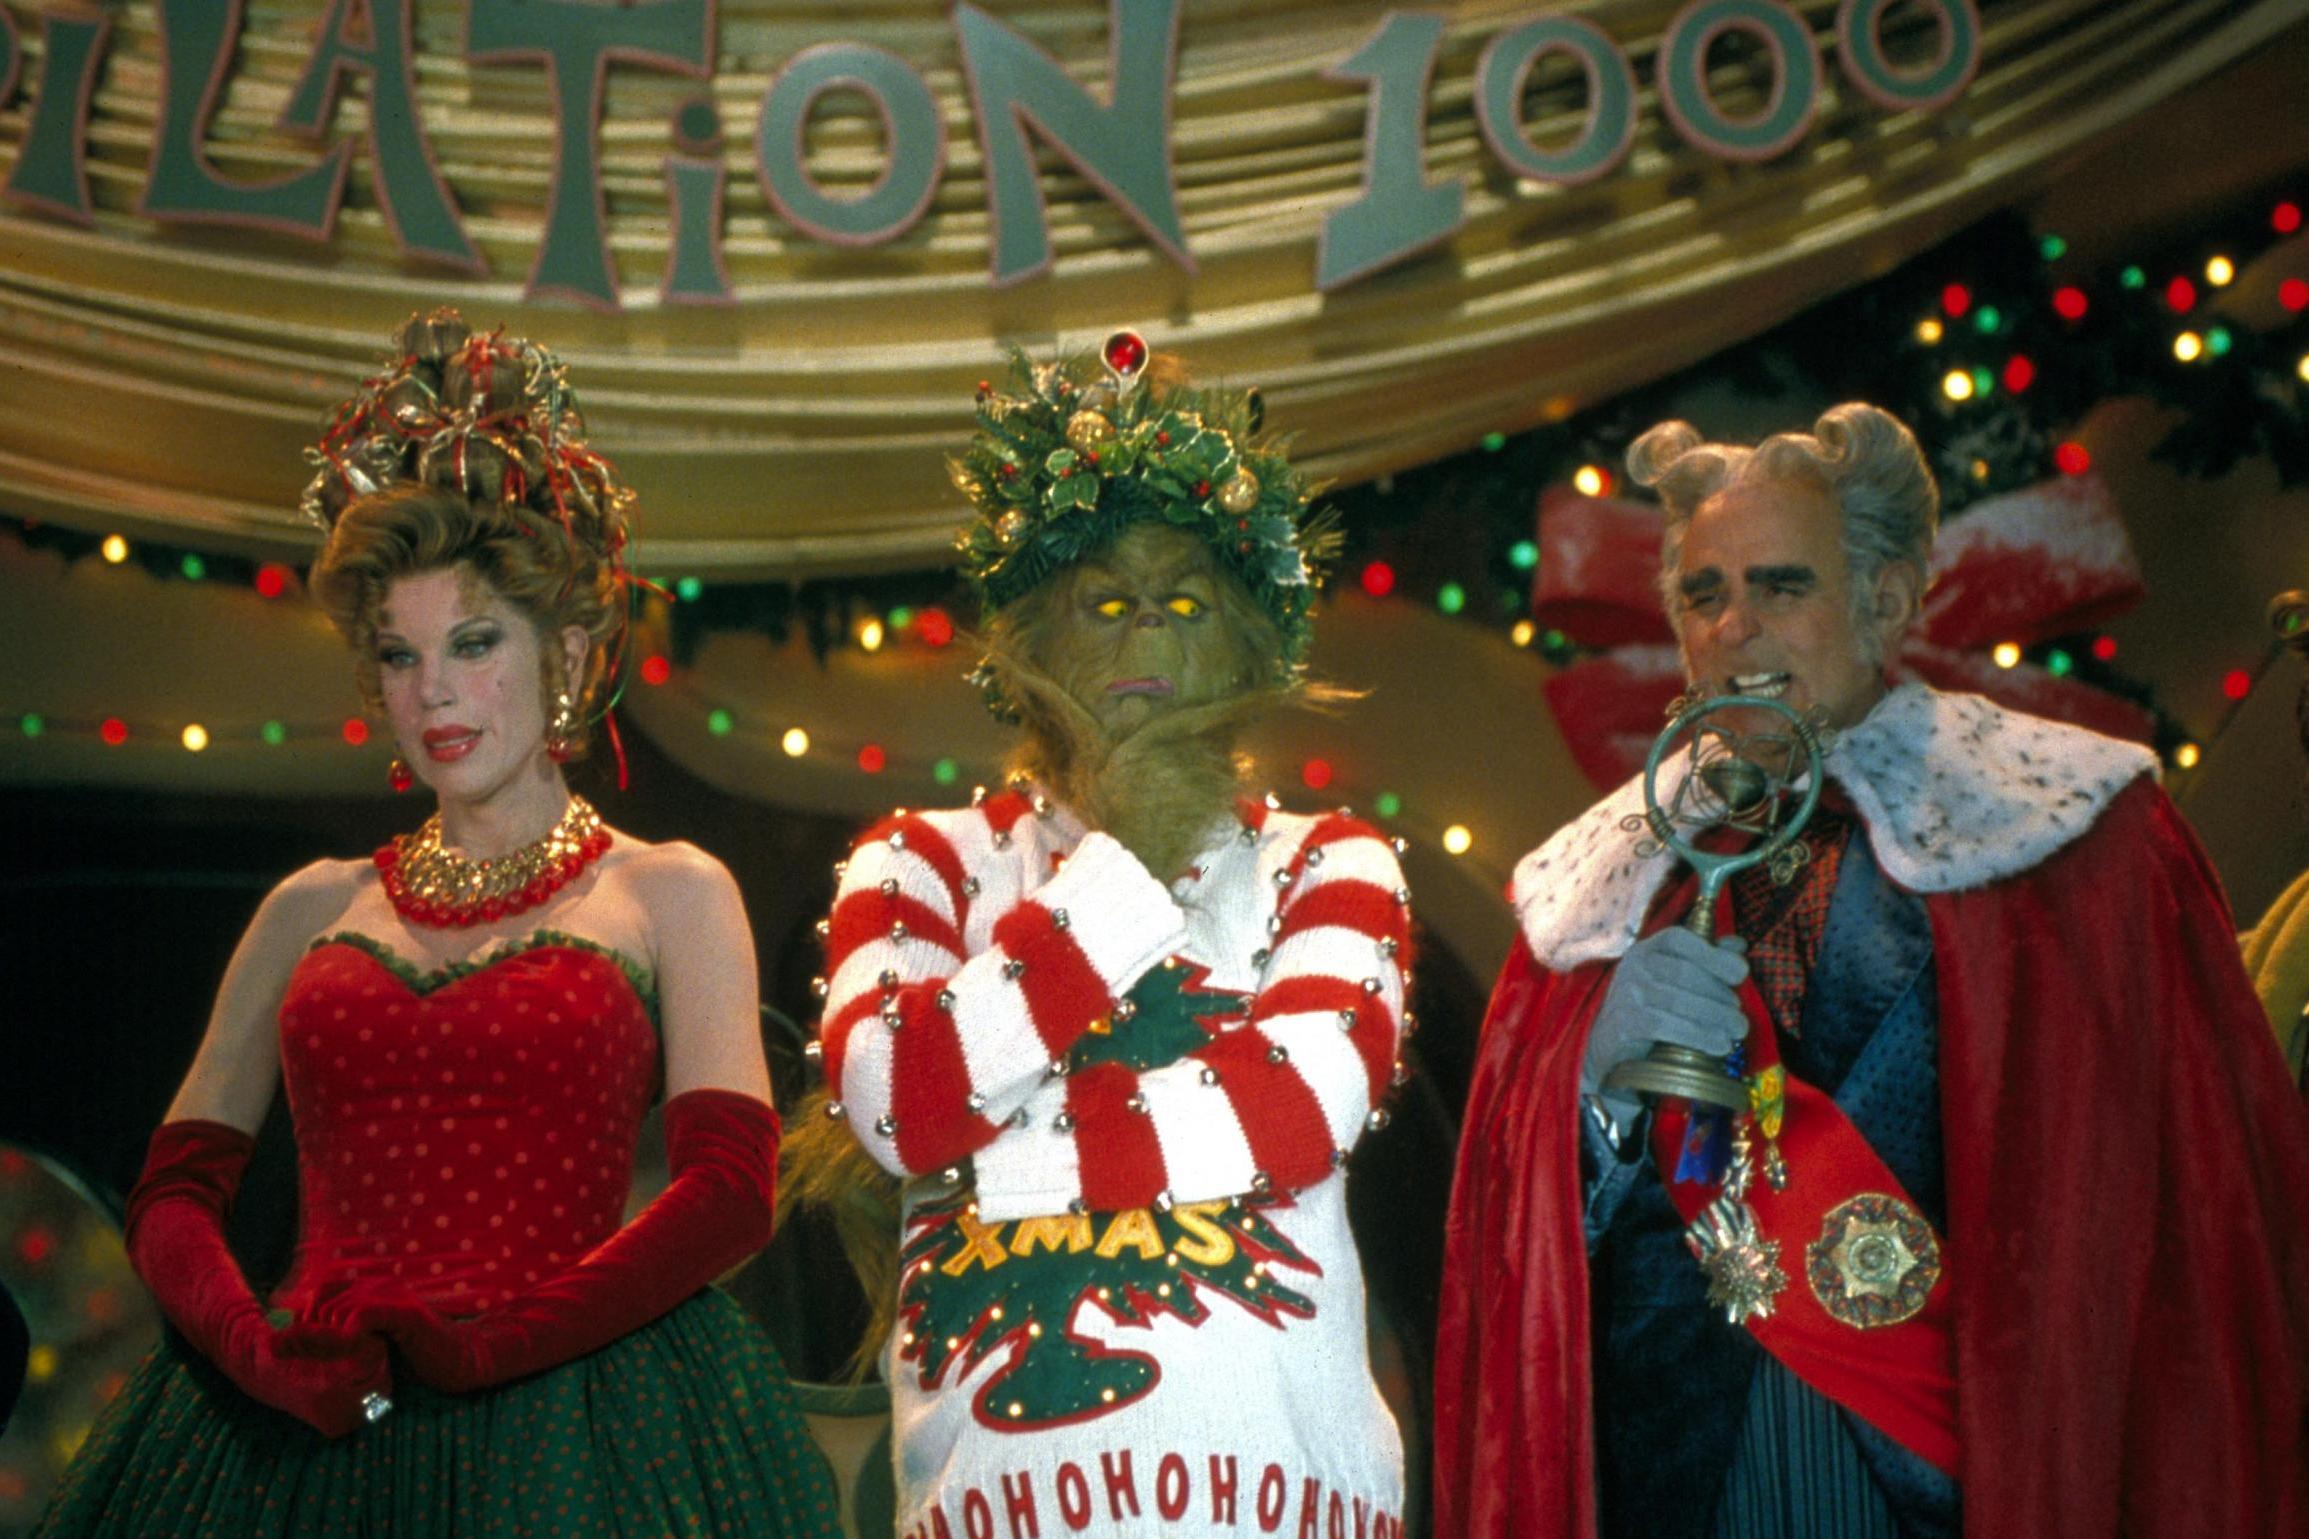 The Grinch, Whoville Residents, and the Mayor.